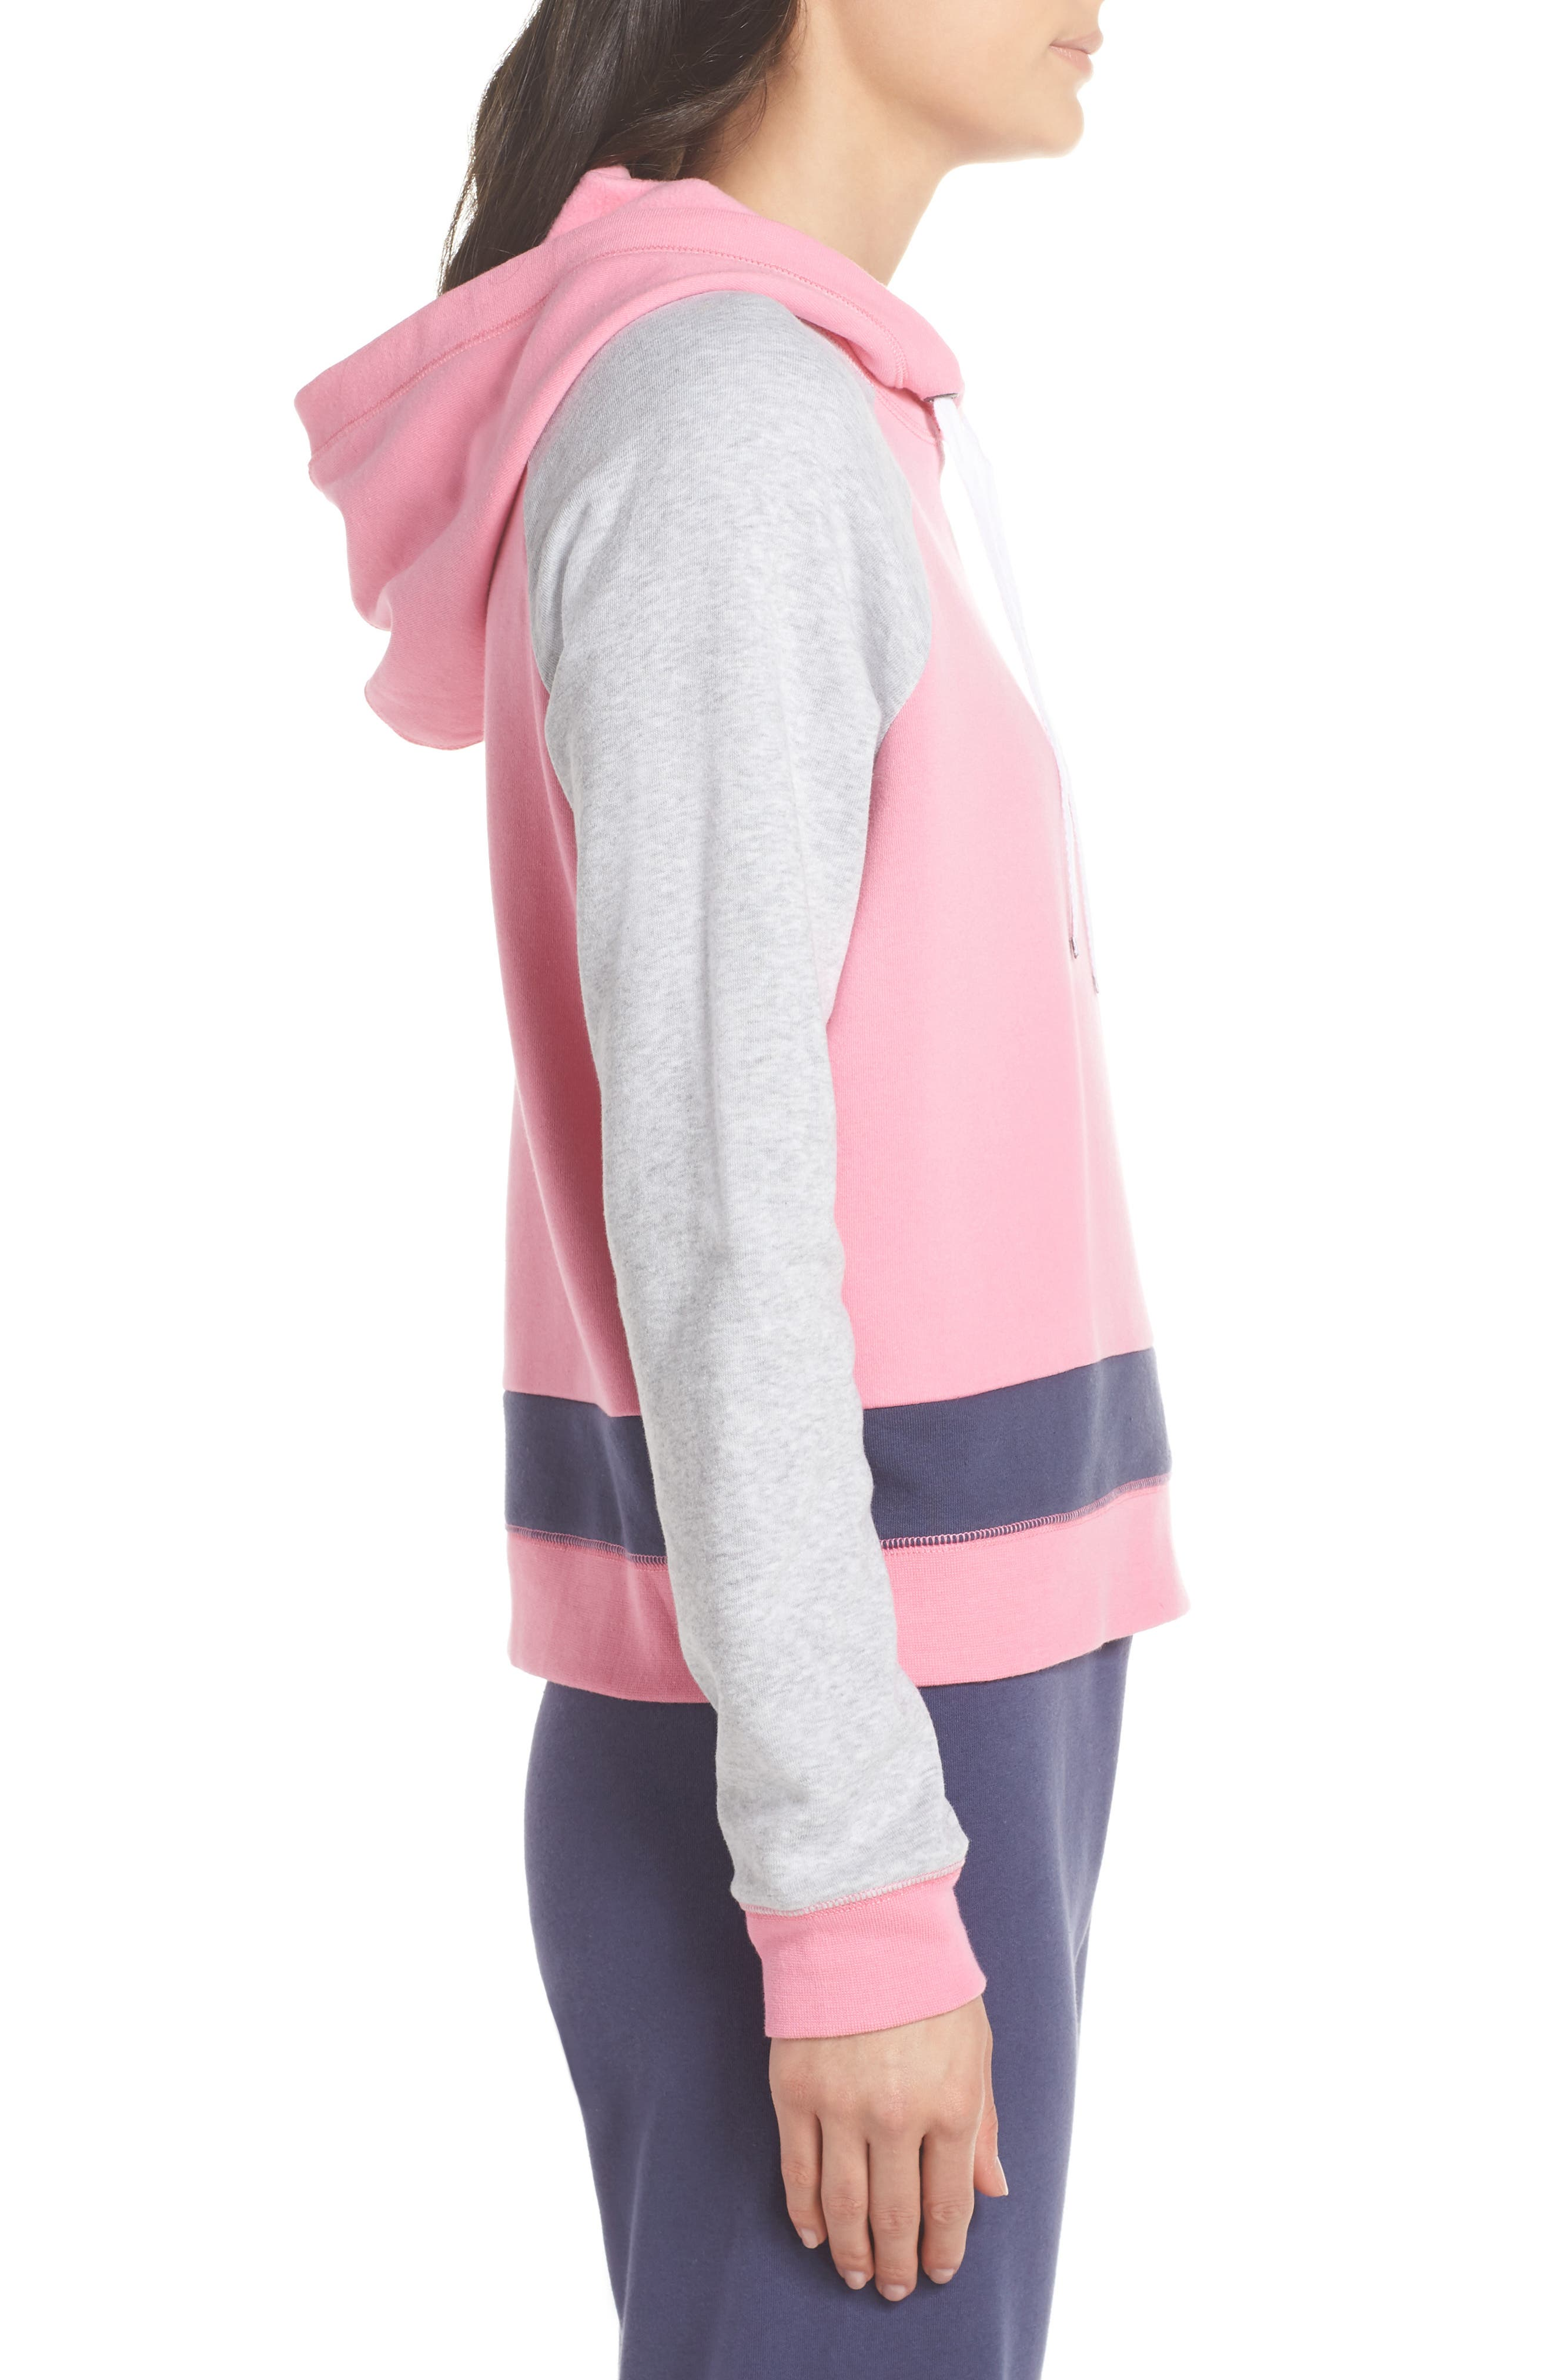 Sleepy Fleece Hoodie,                             Alternate thumbnail 3, color,                             660